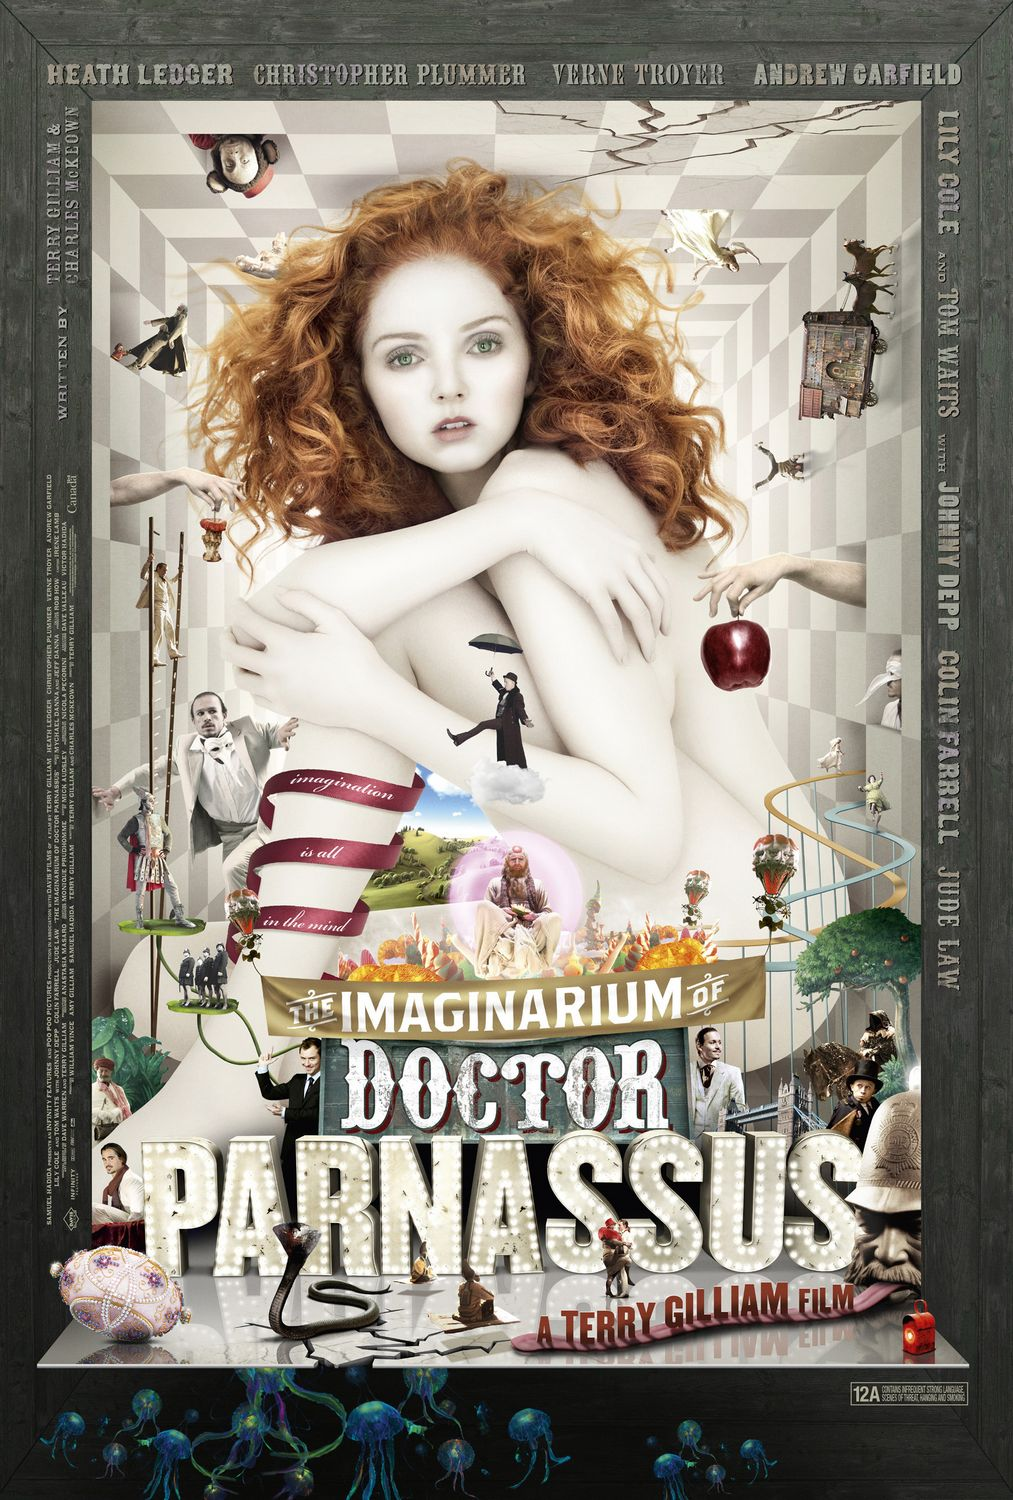 Cover van The Imaginarium of Doctor Parnassus